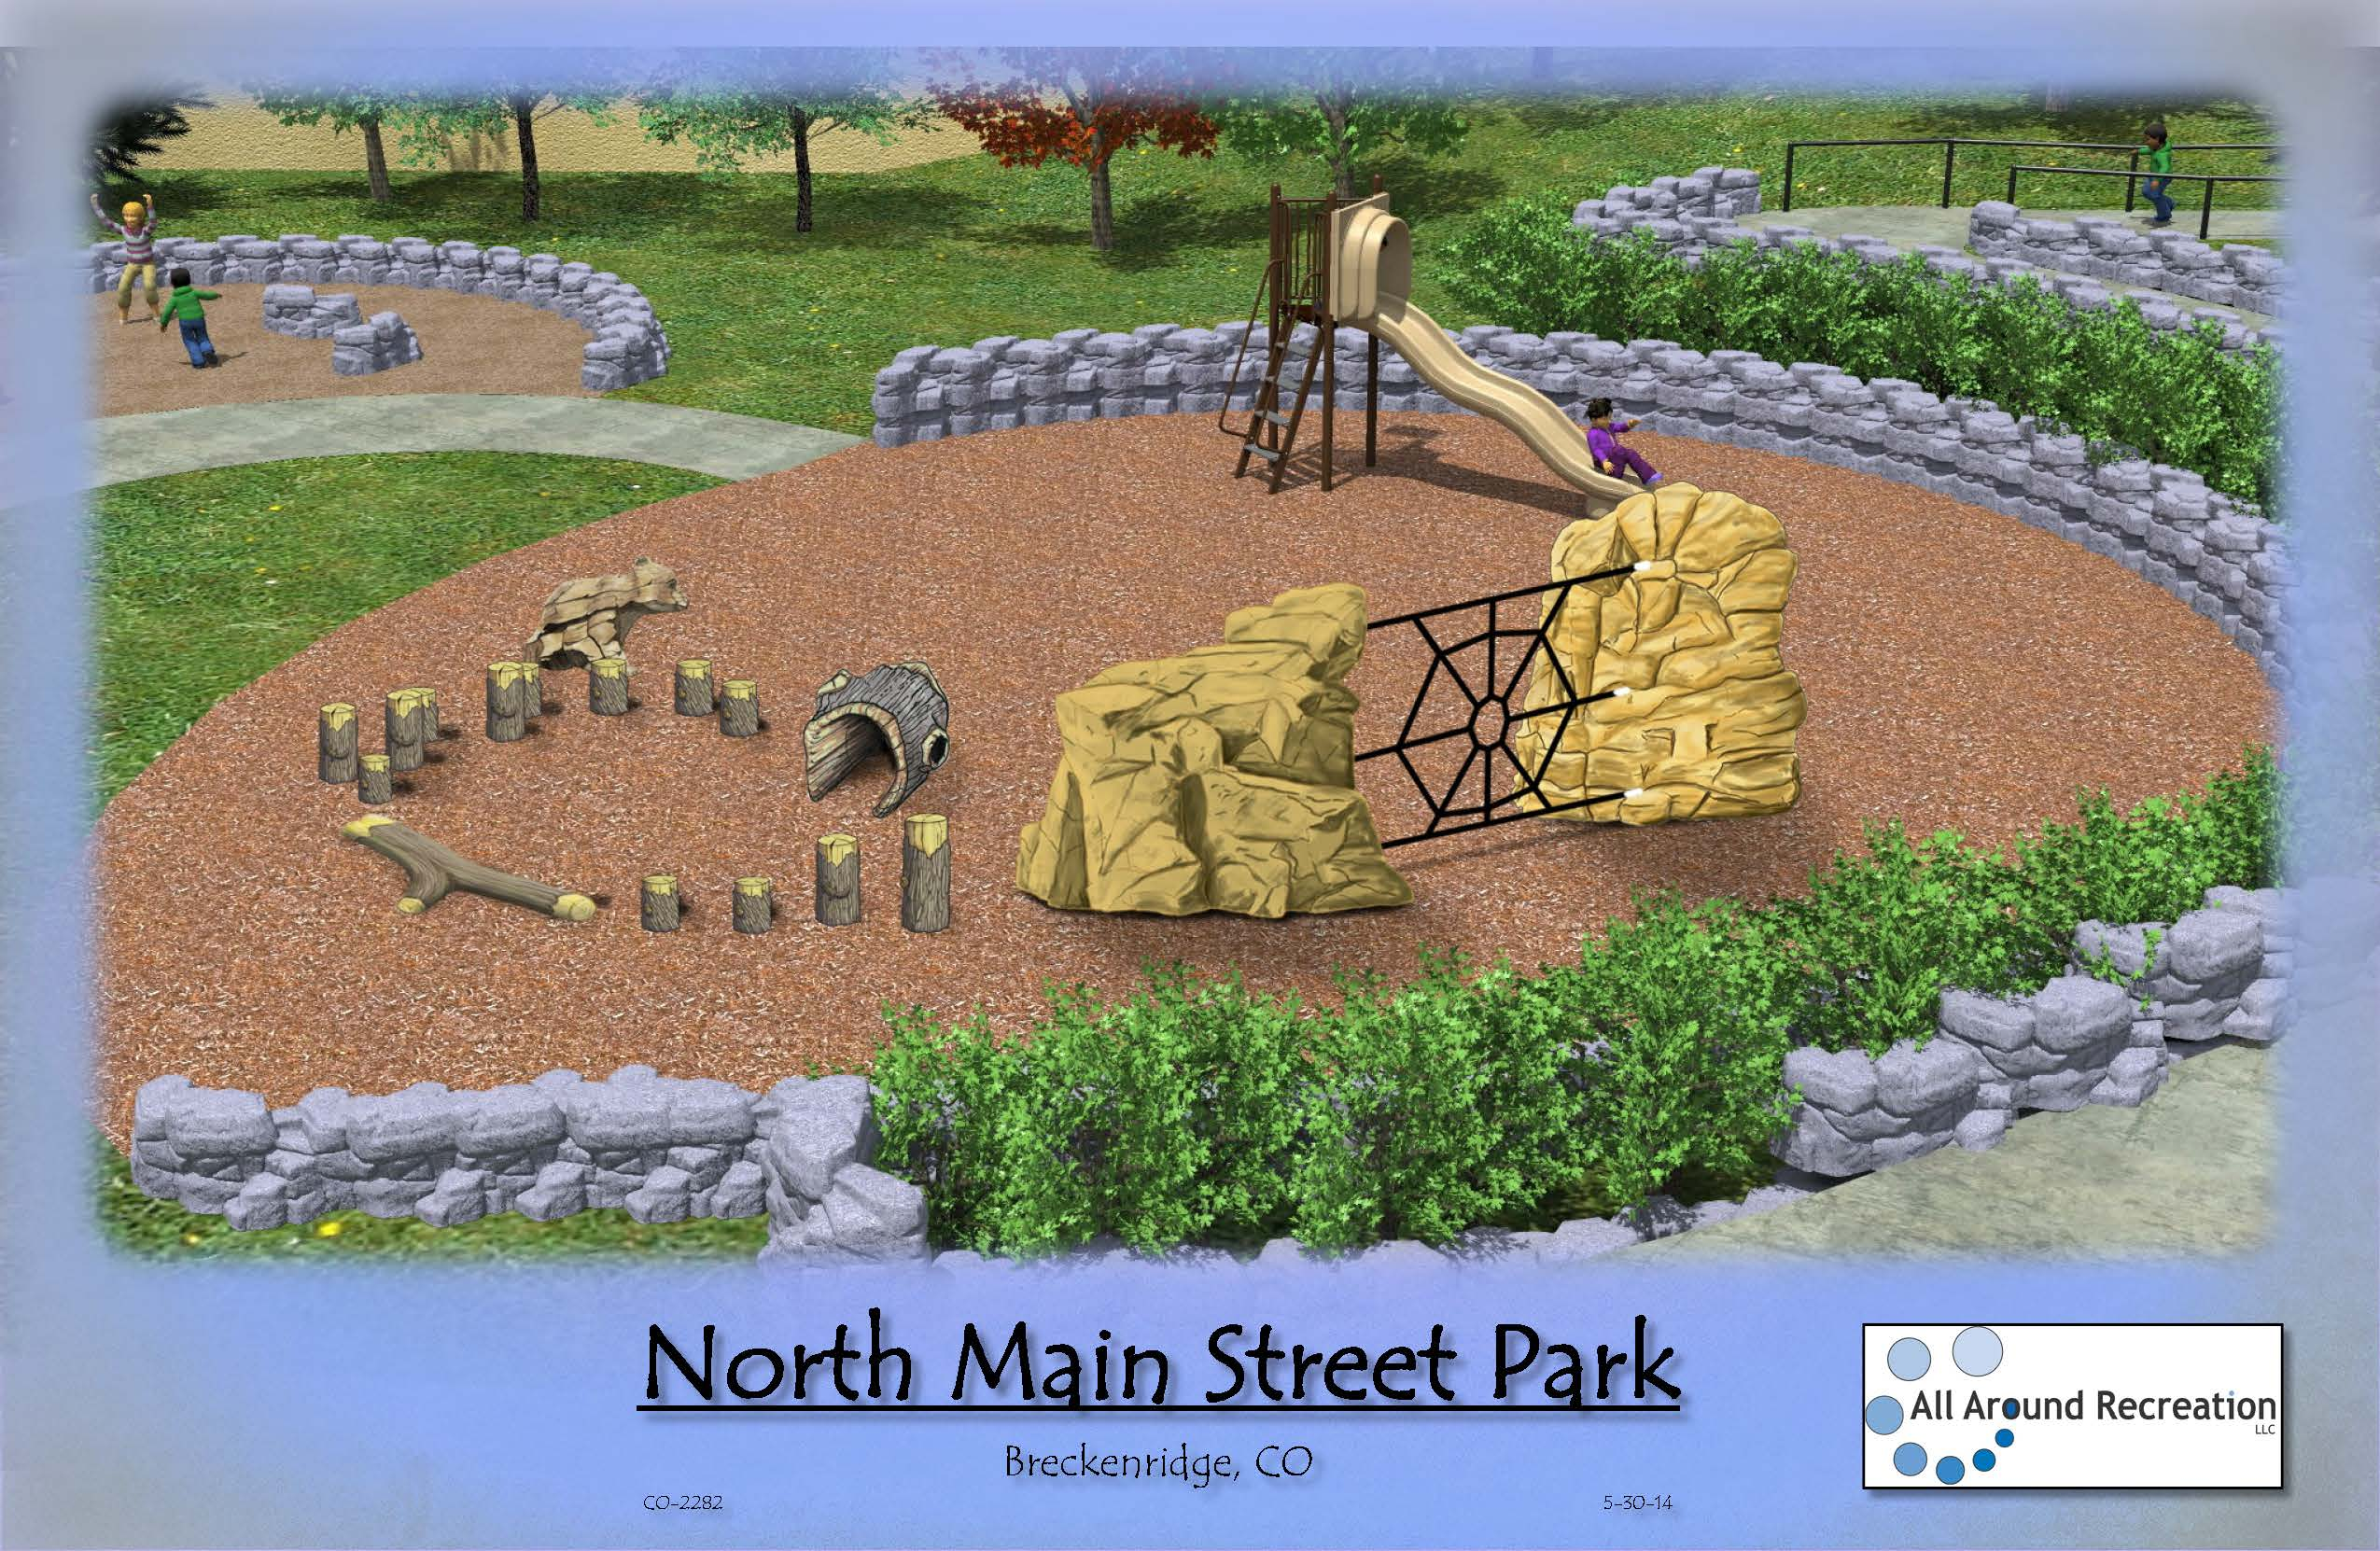 Name the new park